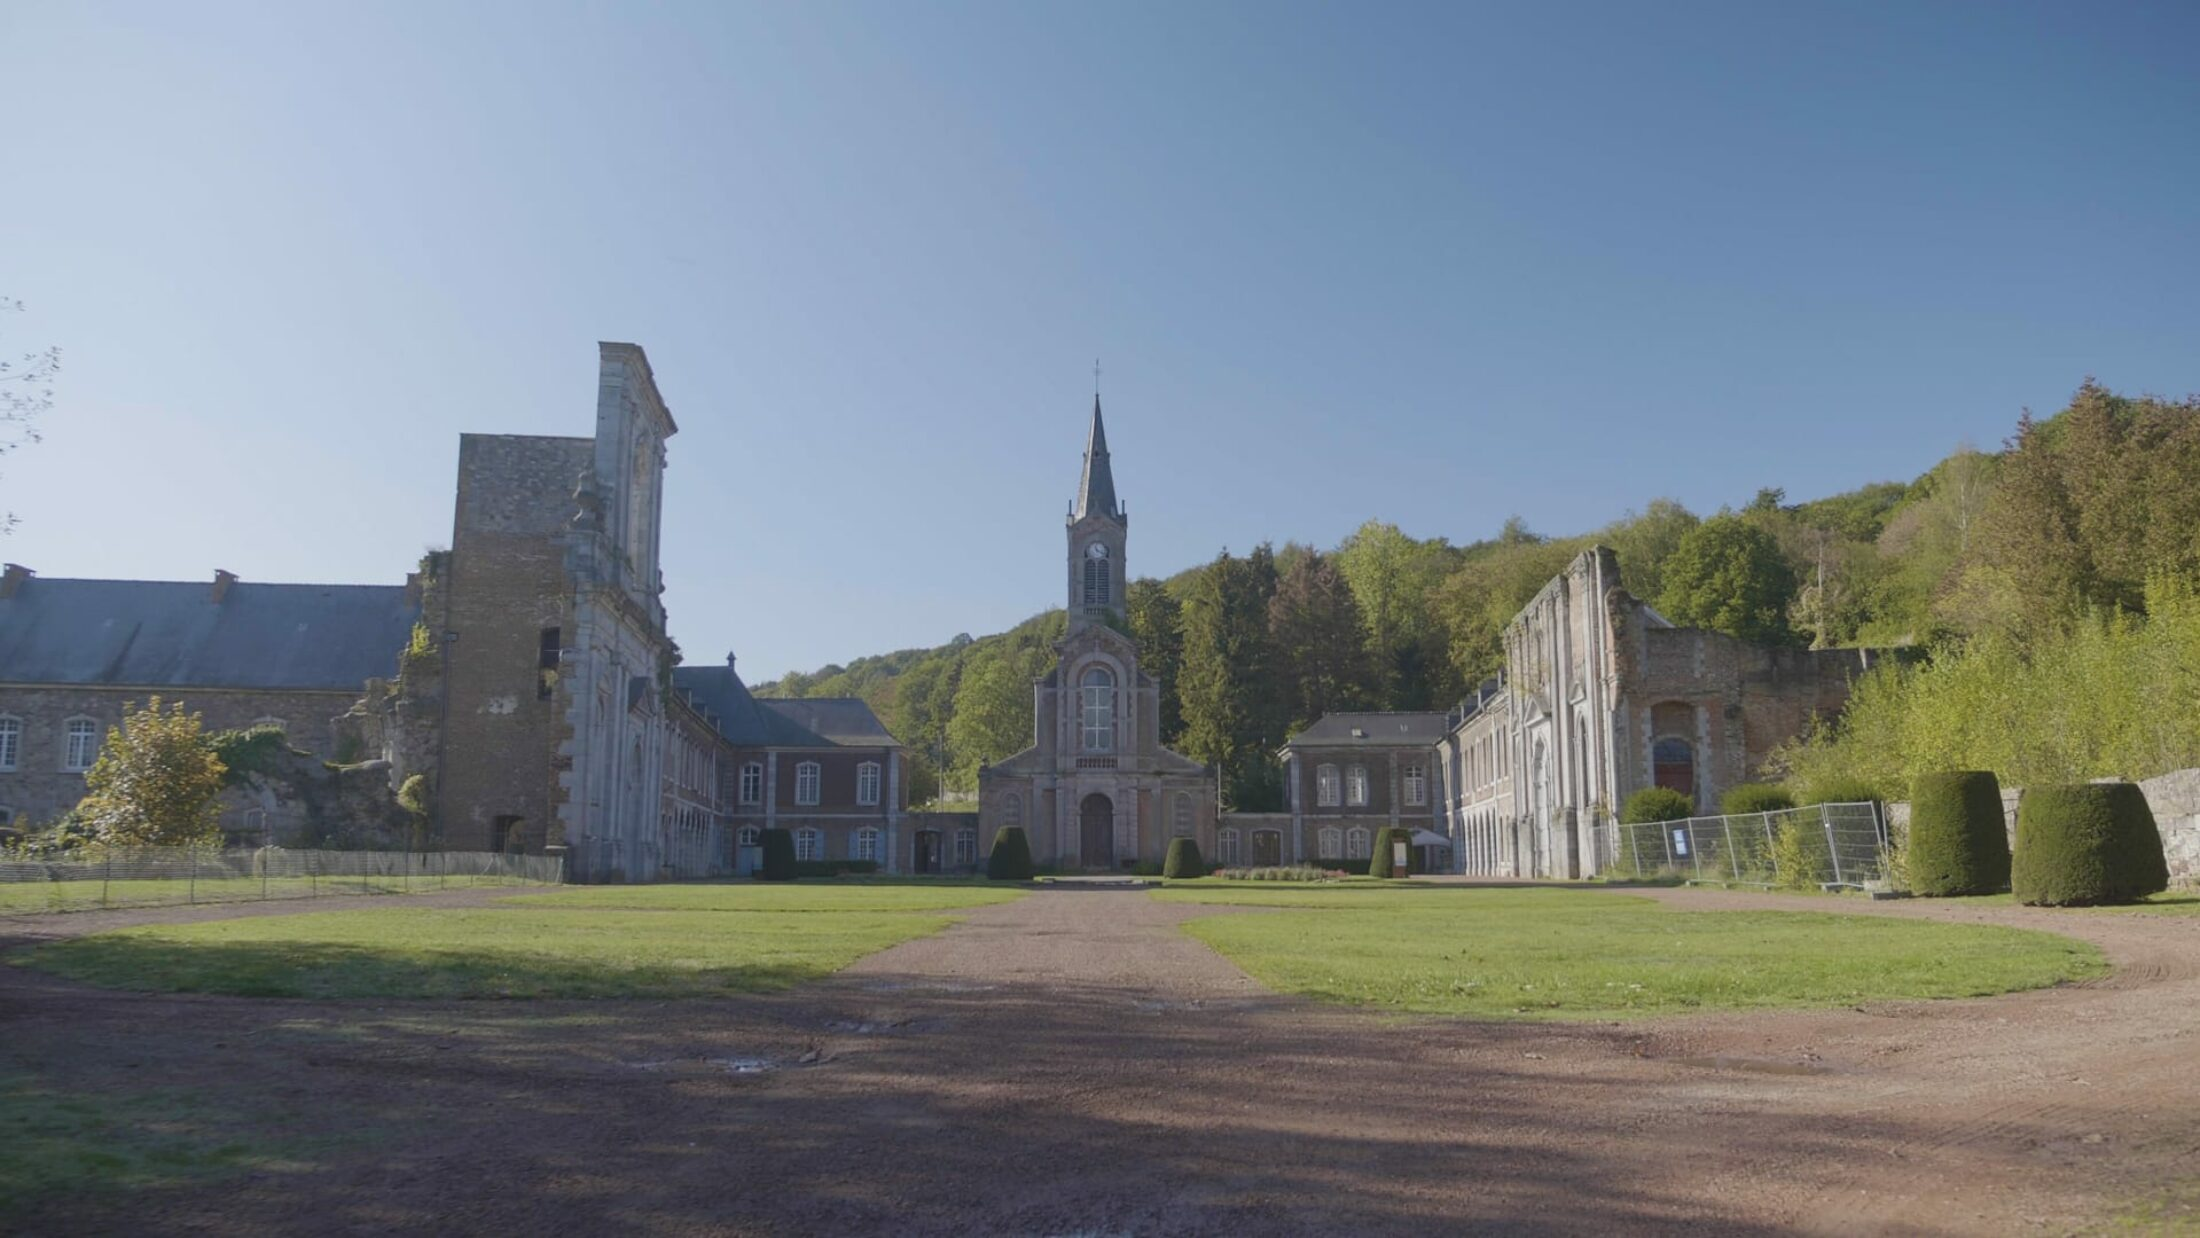 In the footsteps of the monks of the Abbaye d'Aulne